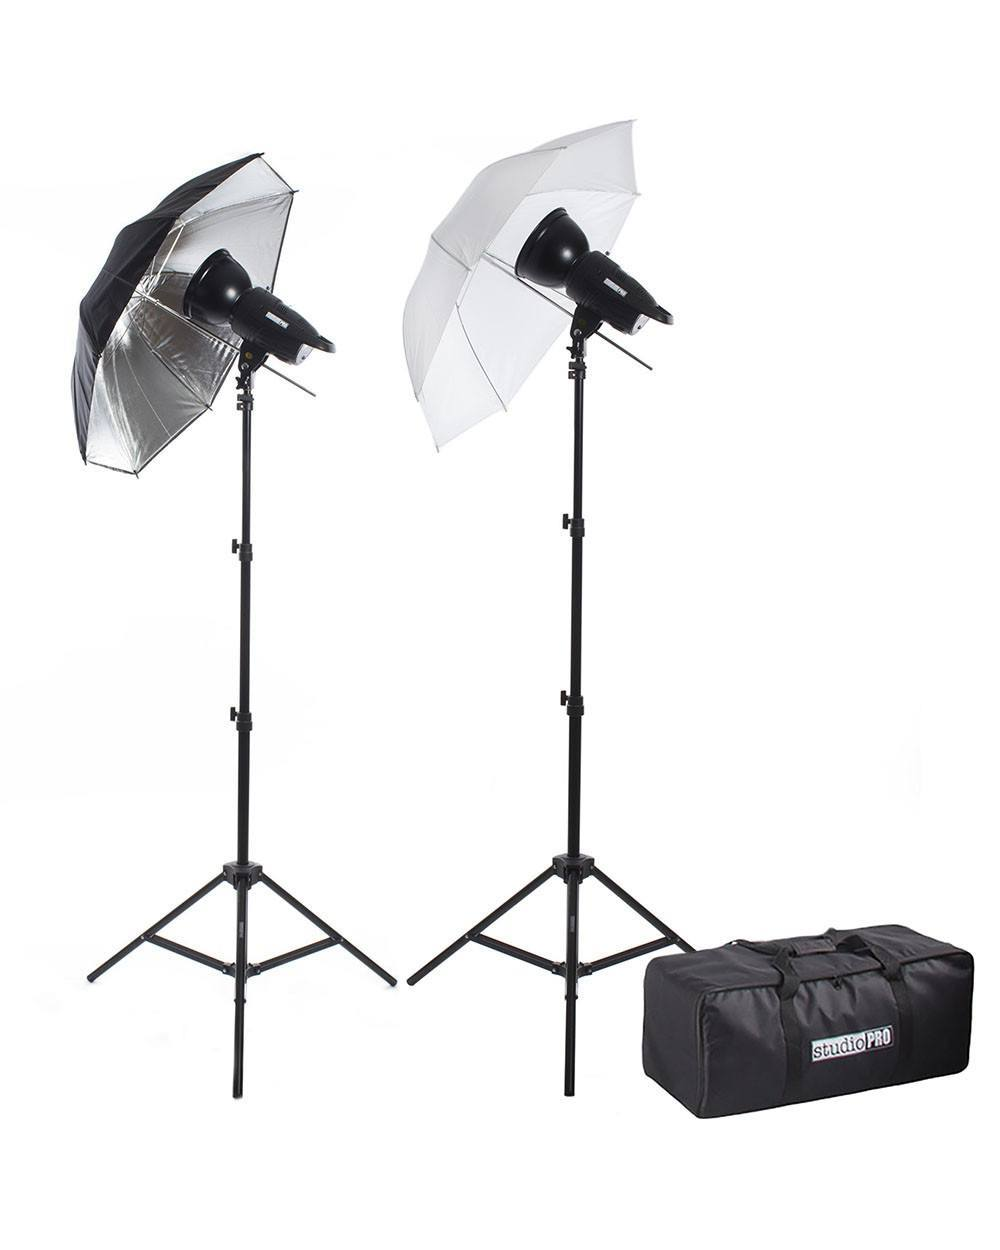 "300W/s Two Strobe 33"" Translucent & Black Silver Umbrella Kit w/ Carrying Bag -  - 1"